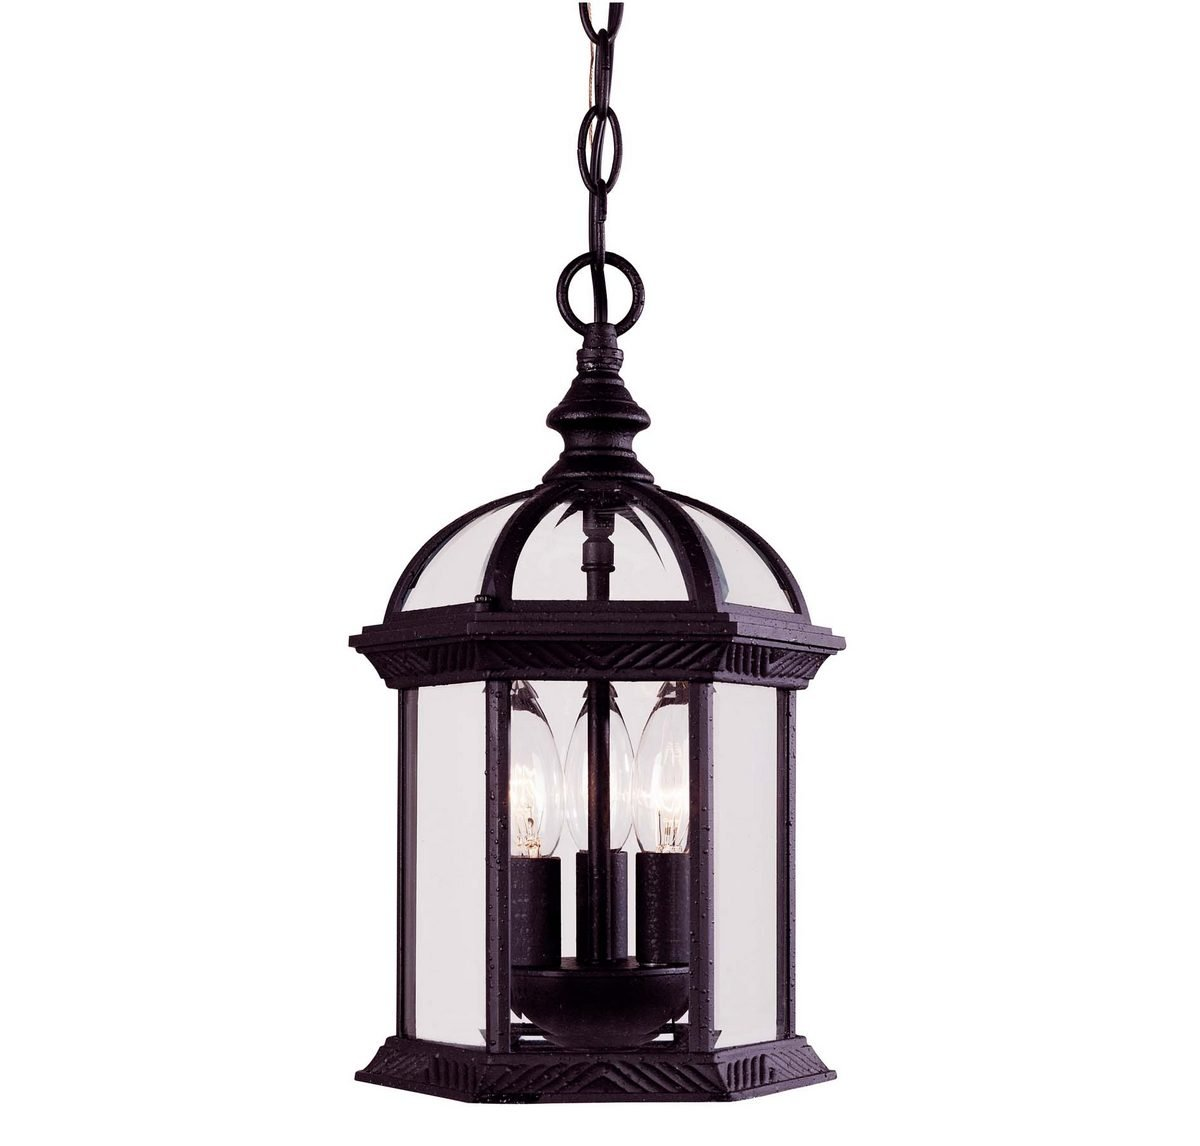 Savoy House 5-0635-BK Outdoor Pendant with Clear Beveled Shades, Textured Black Finish by Savoy House